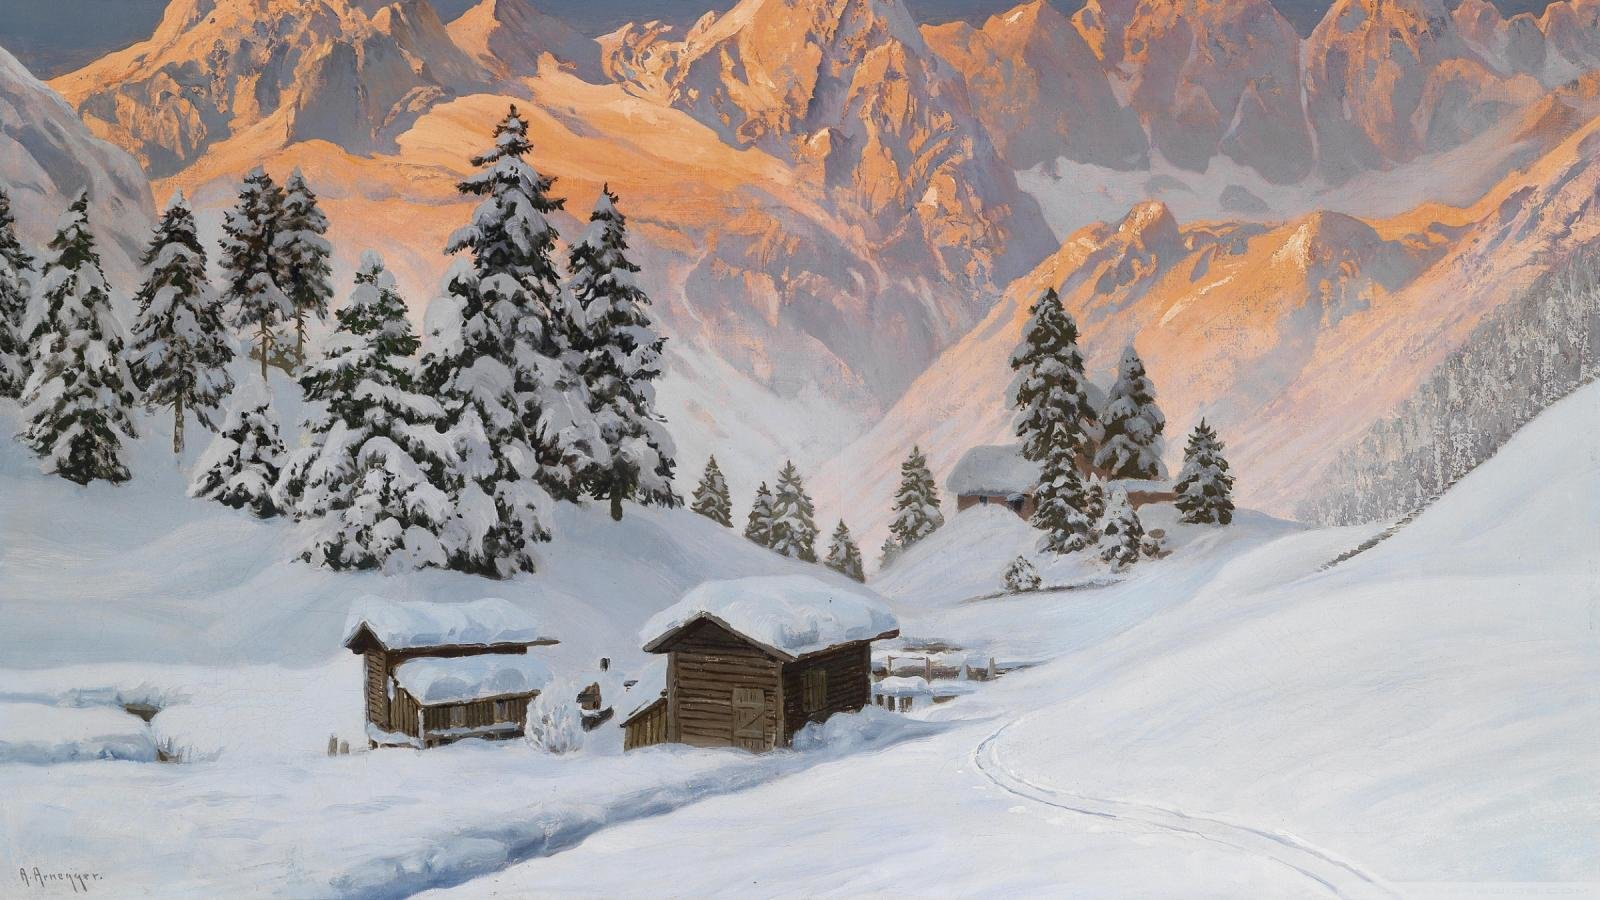 Winter Wallpapers 1600x900 Desktop Backgrounds